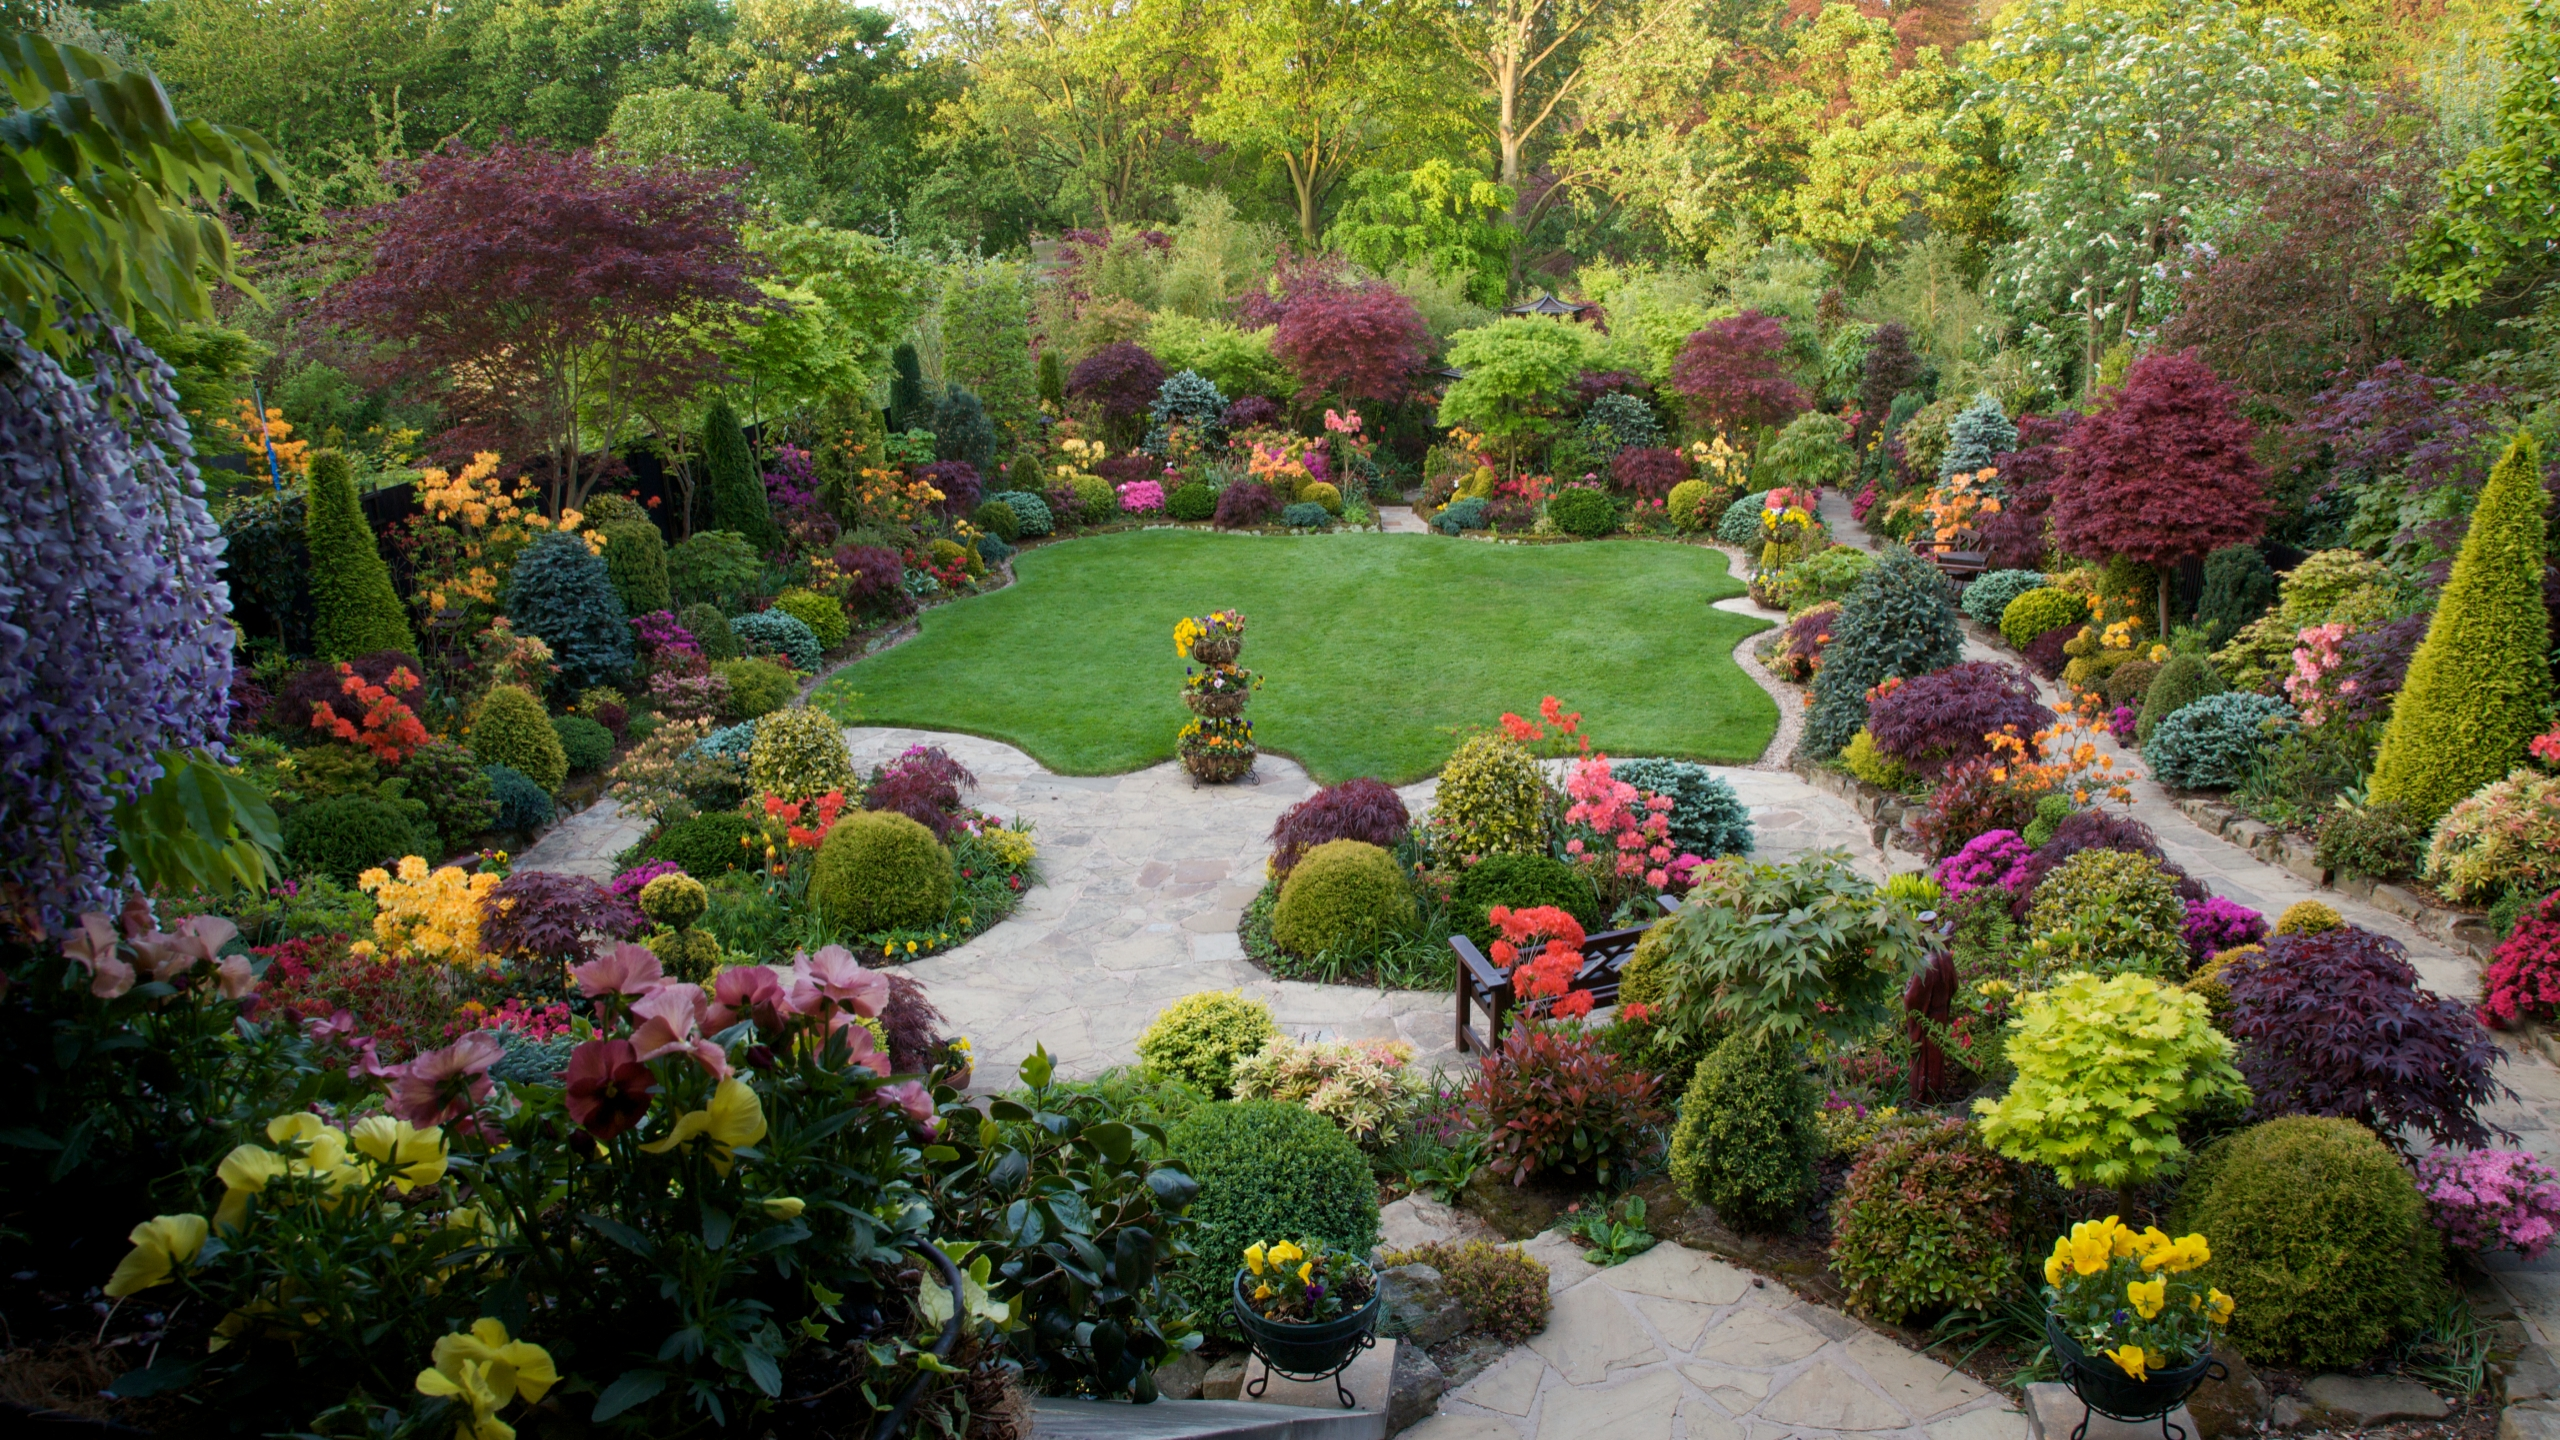 Garden hd wallpaper background image 2560x1440 id - Garden screensavers free ...